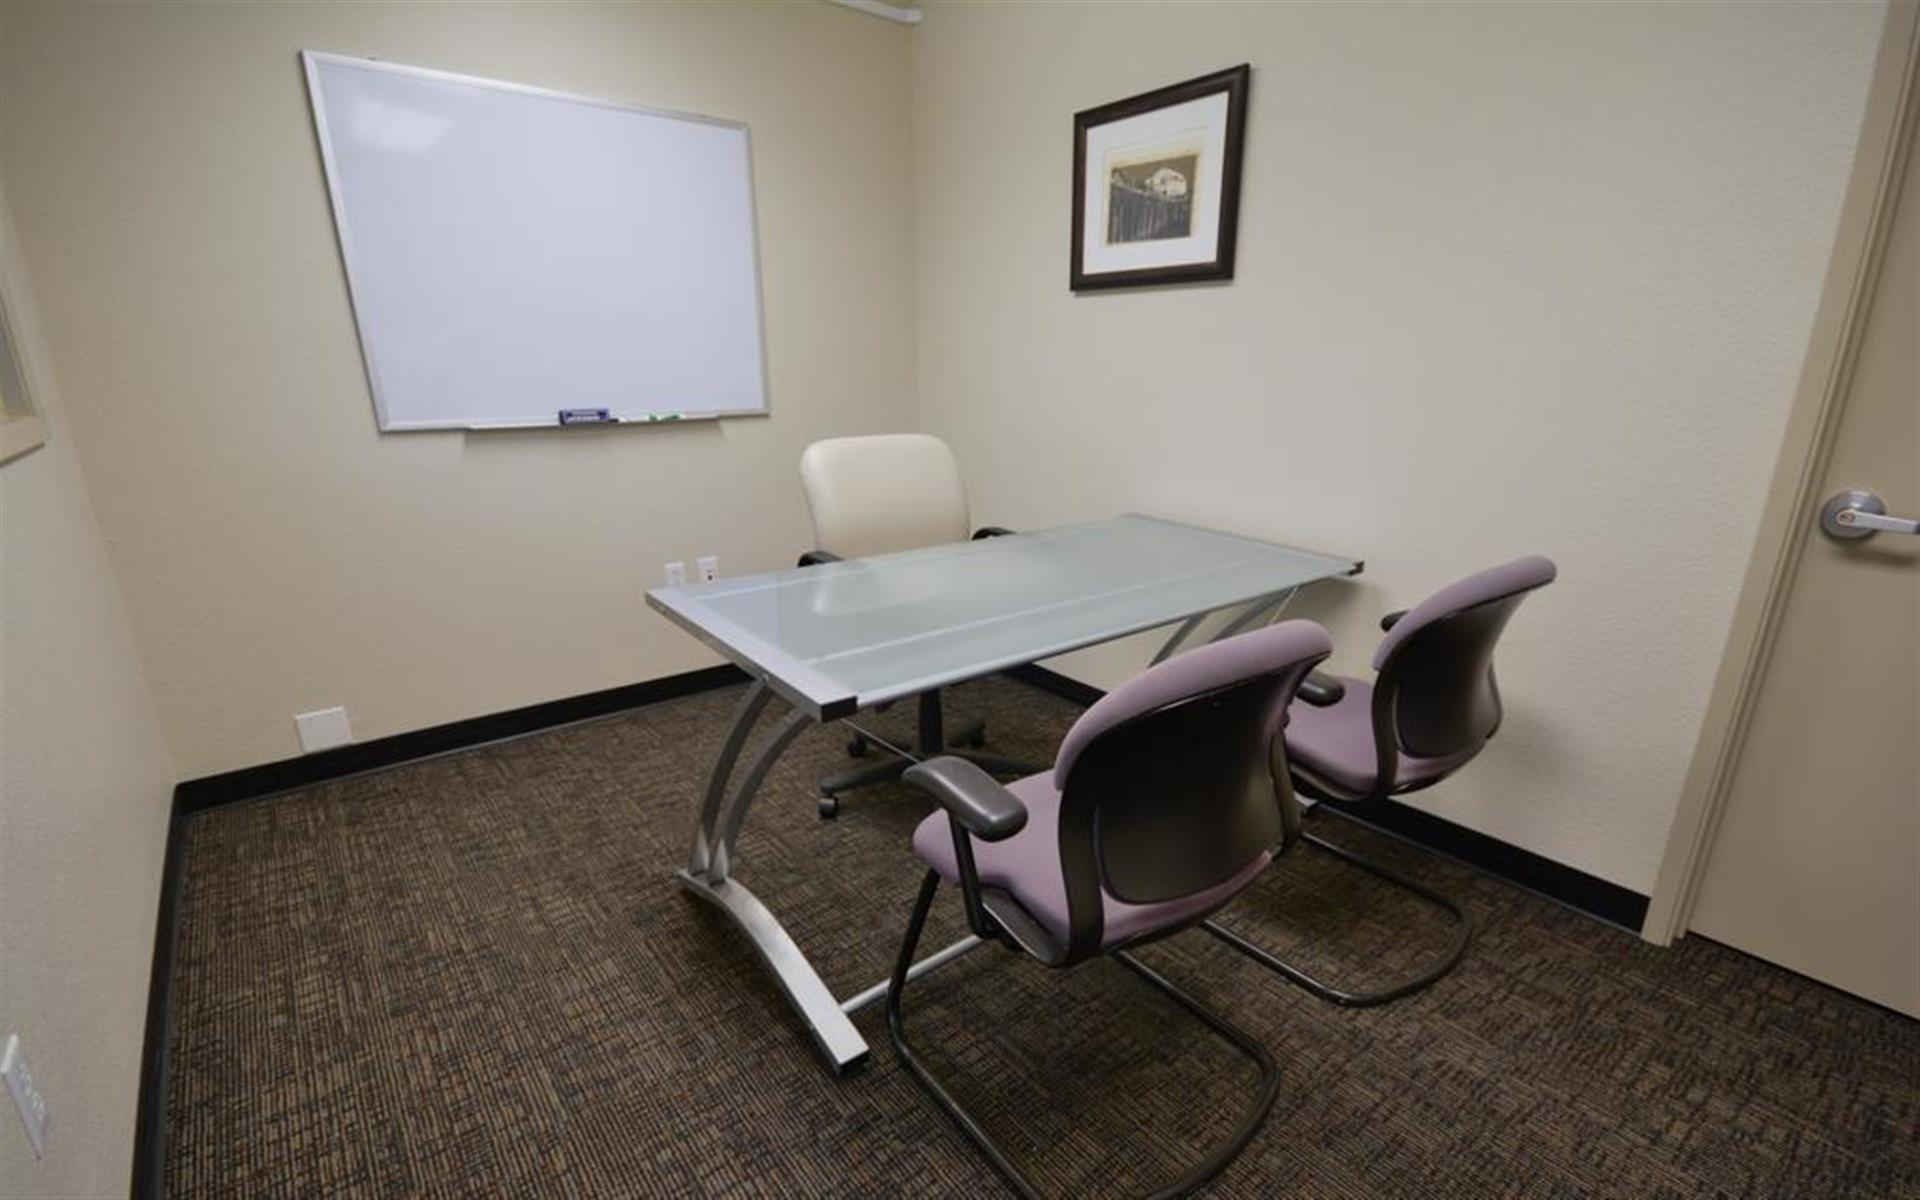 The Satellite Scotts Valley - Daily/Hourly Private Office